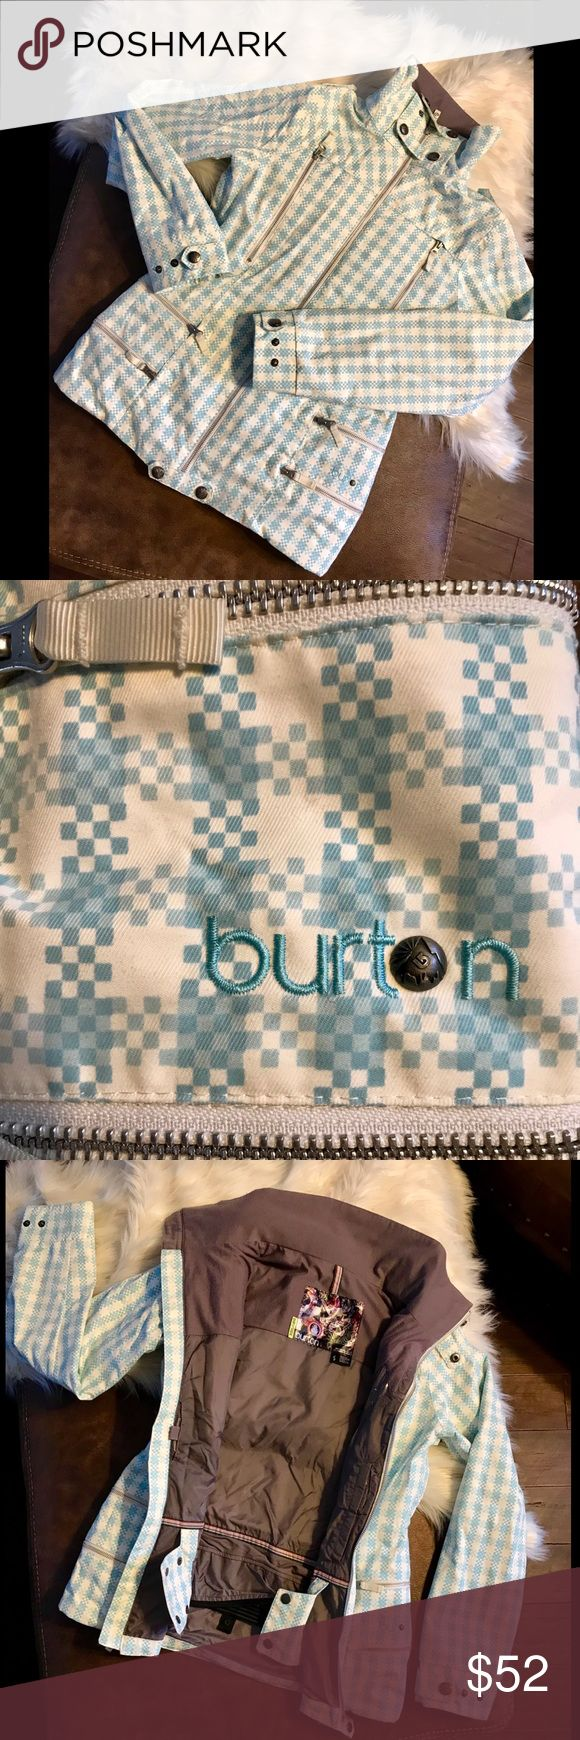 Burton Ski/Snowboard Jacket Blue & White checked Burton jacket! Fairs great on the slopes, and is in great condition. No stains or marks. Plenty of pockets. Size small, fits true. Modeled on 5' 9''. Some room for layers underneath. All reasonable offers accepted! Burton Jackets & Coats